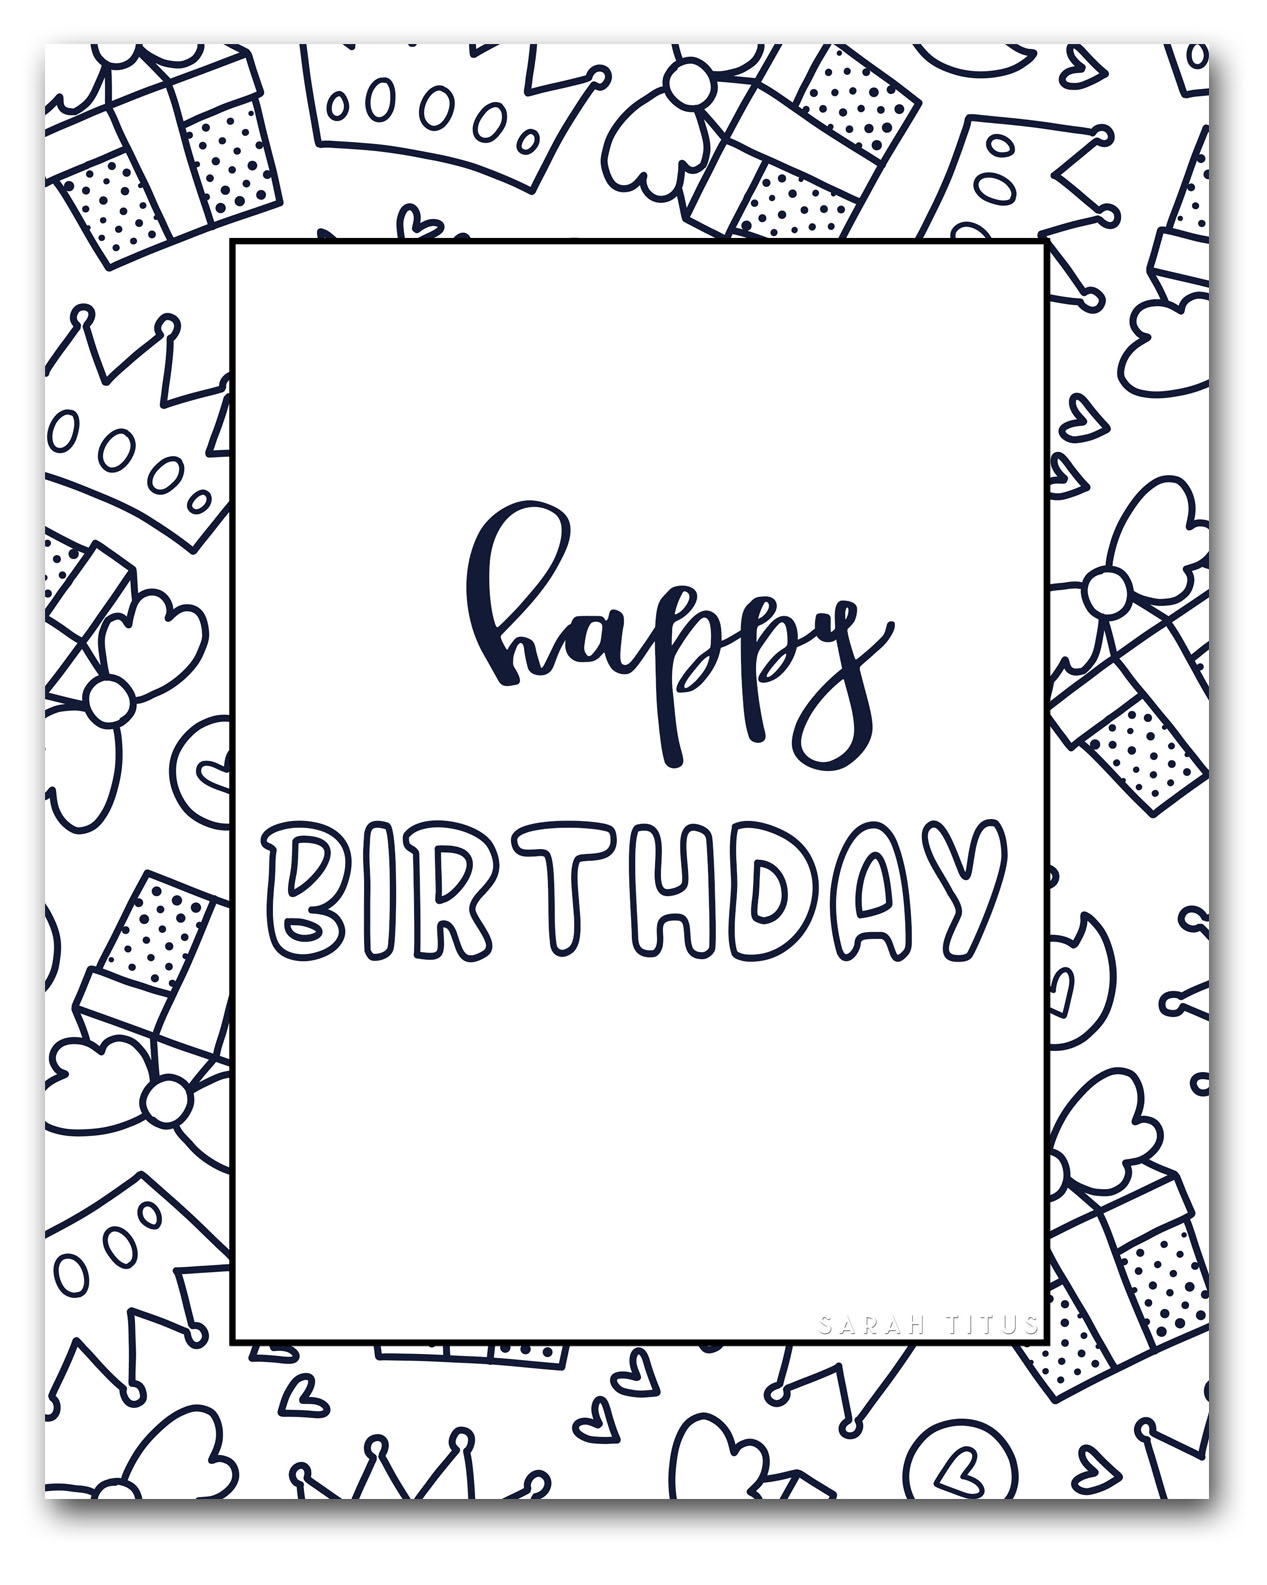 Happy Birthday Coloring Pages To Print Coloring Pages Coloringages Minnie Mouse Happy Birthday Images